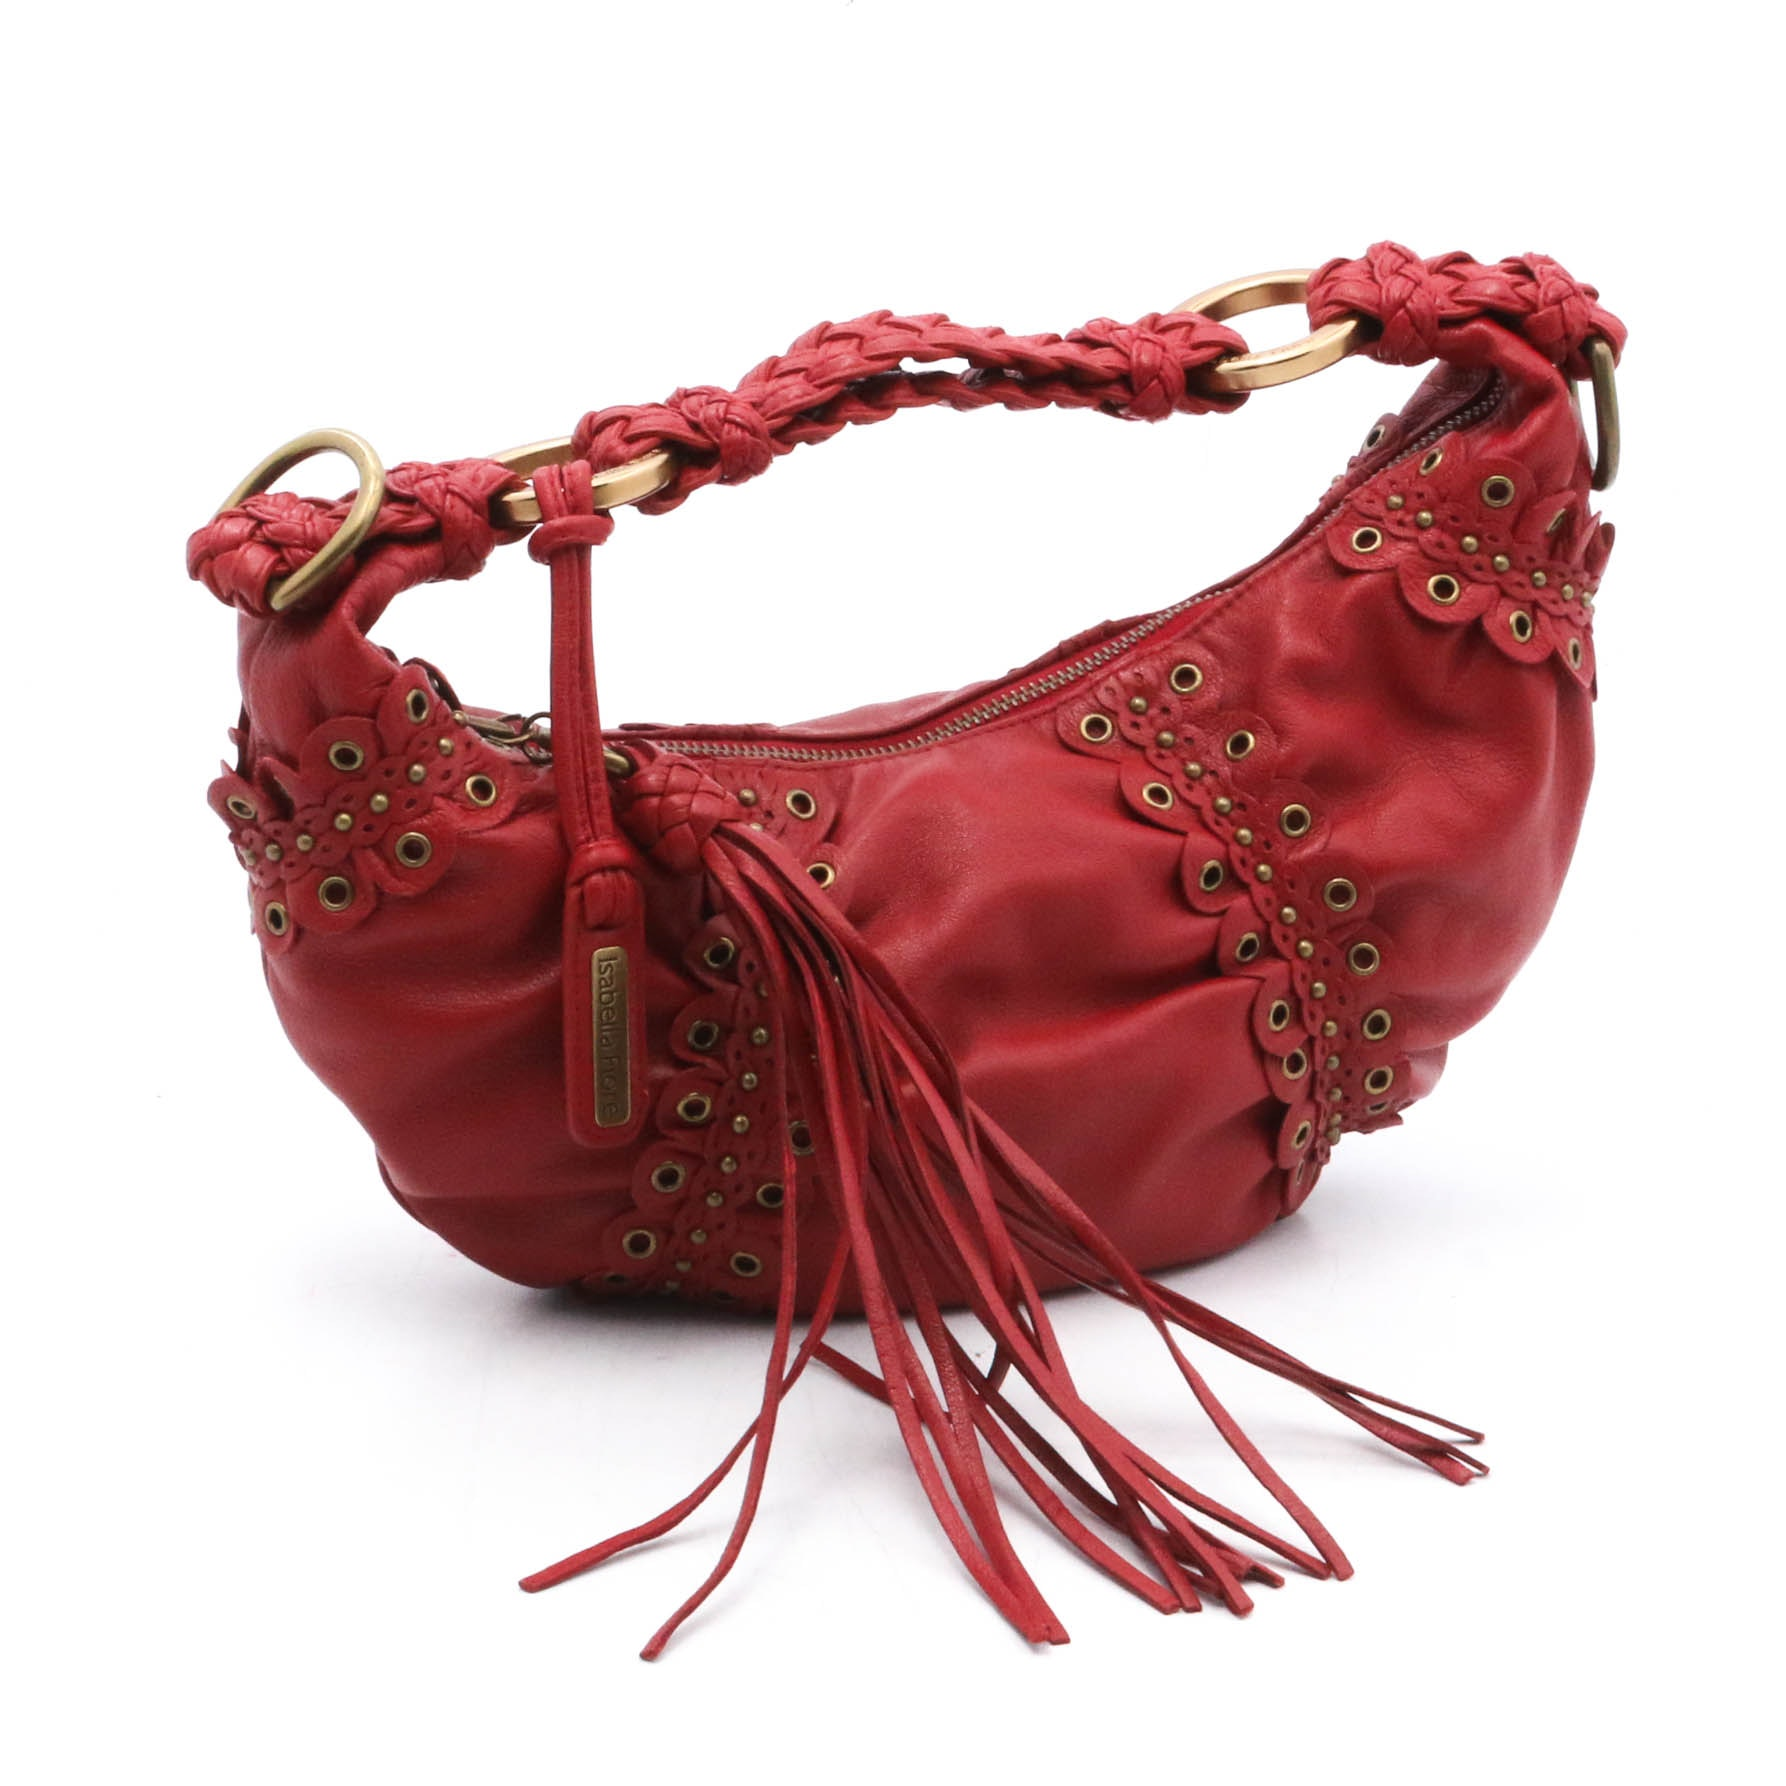 Isabella Fiore Red Leather Shoulder Bag with Grommets and Fringed Tassel